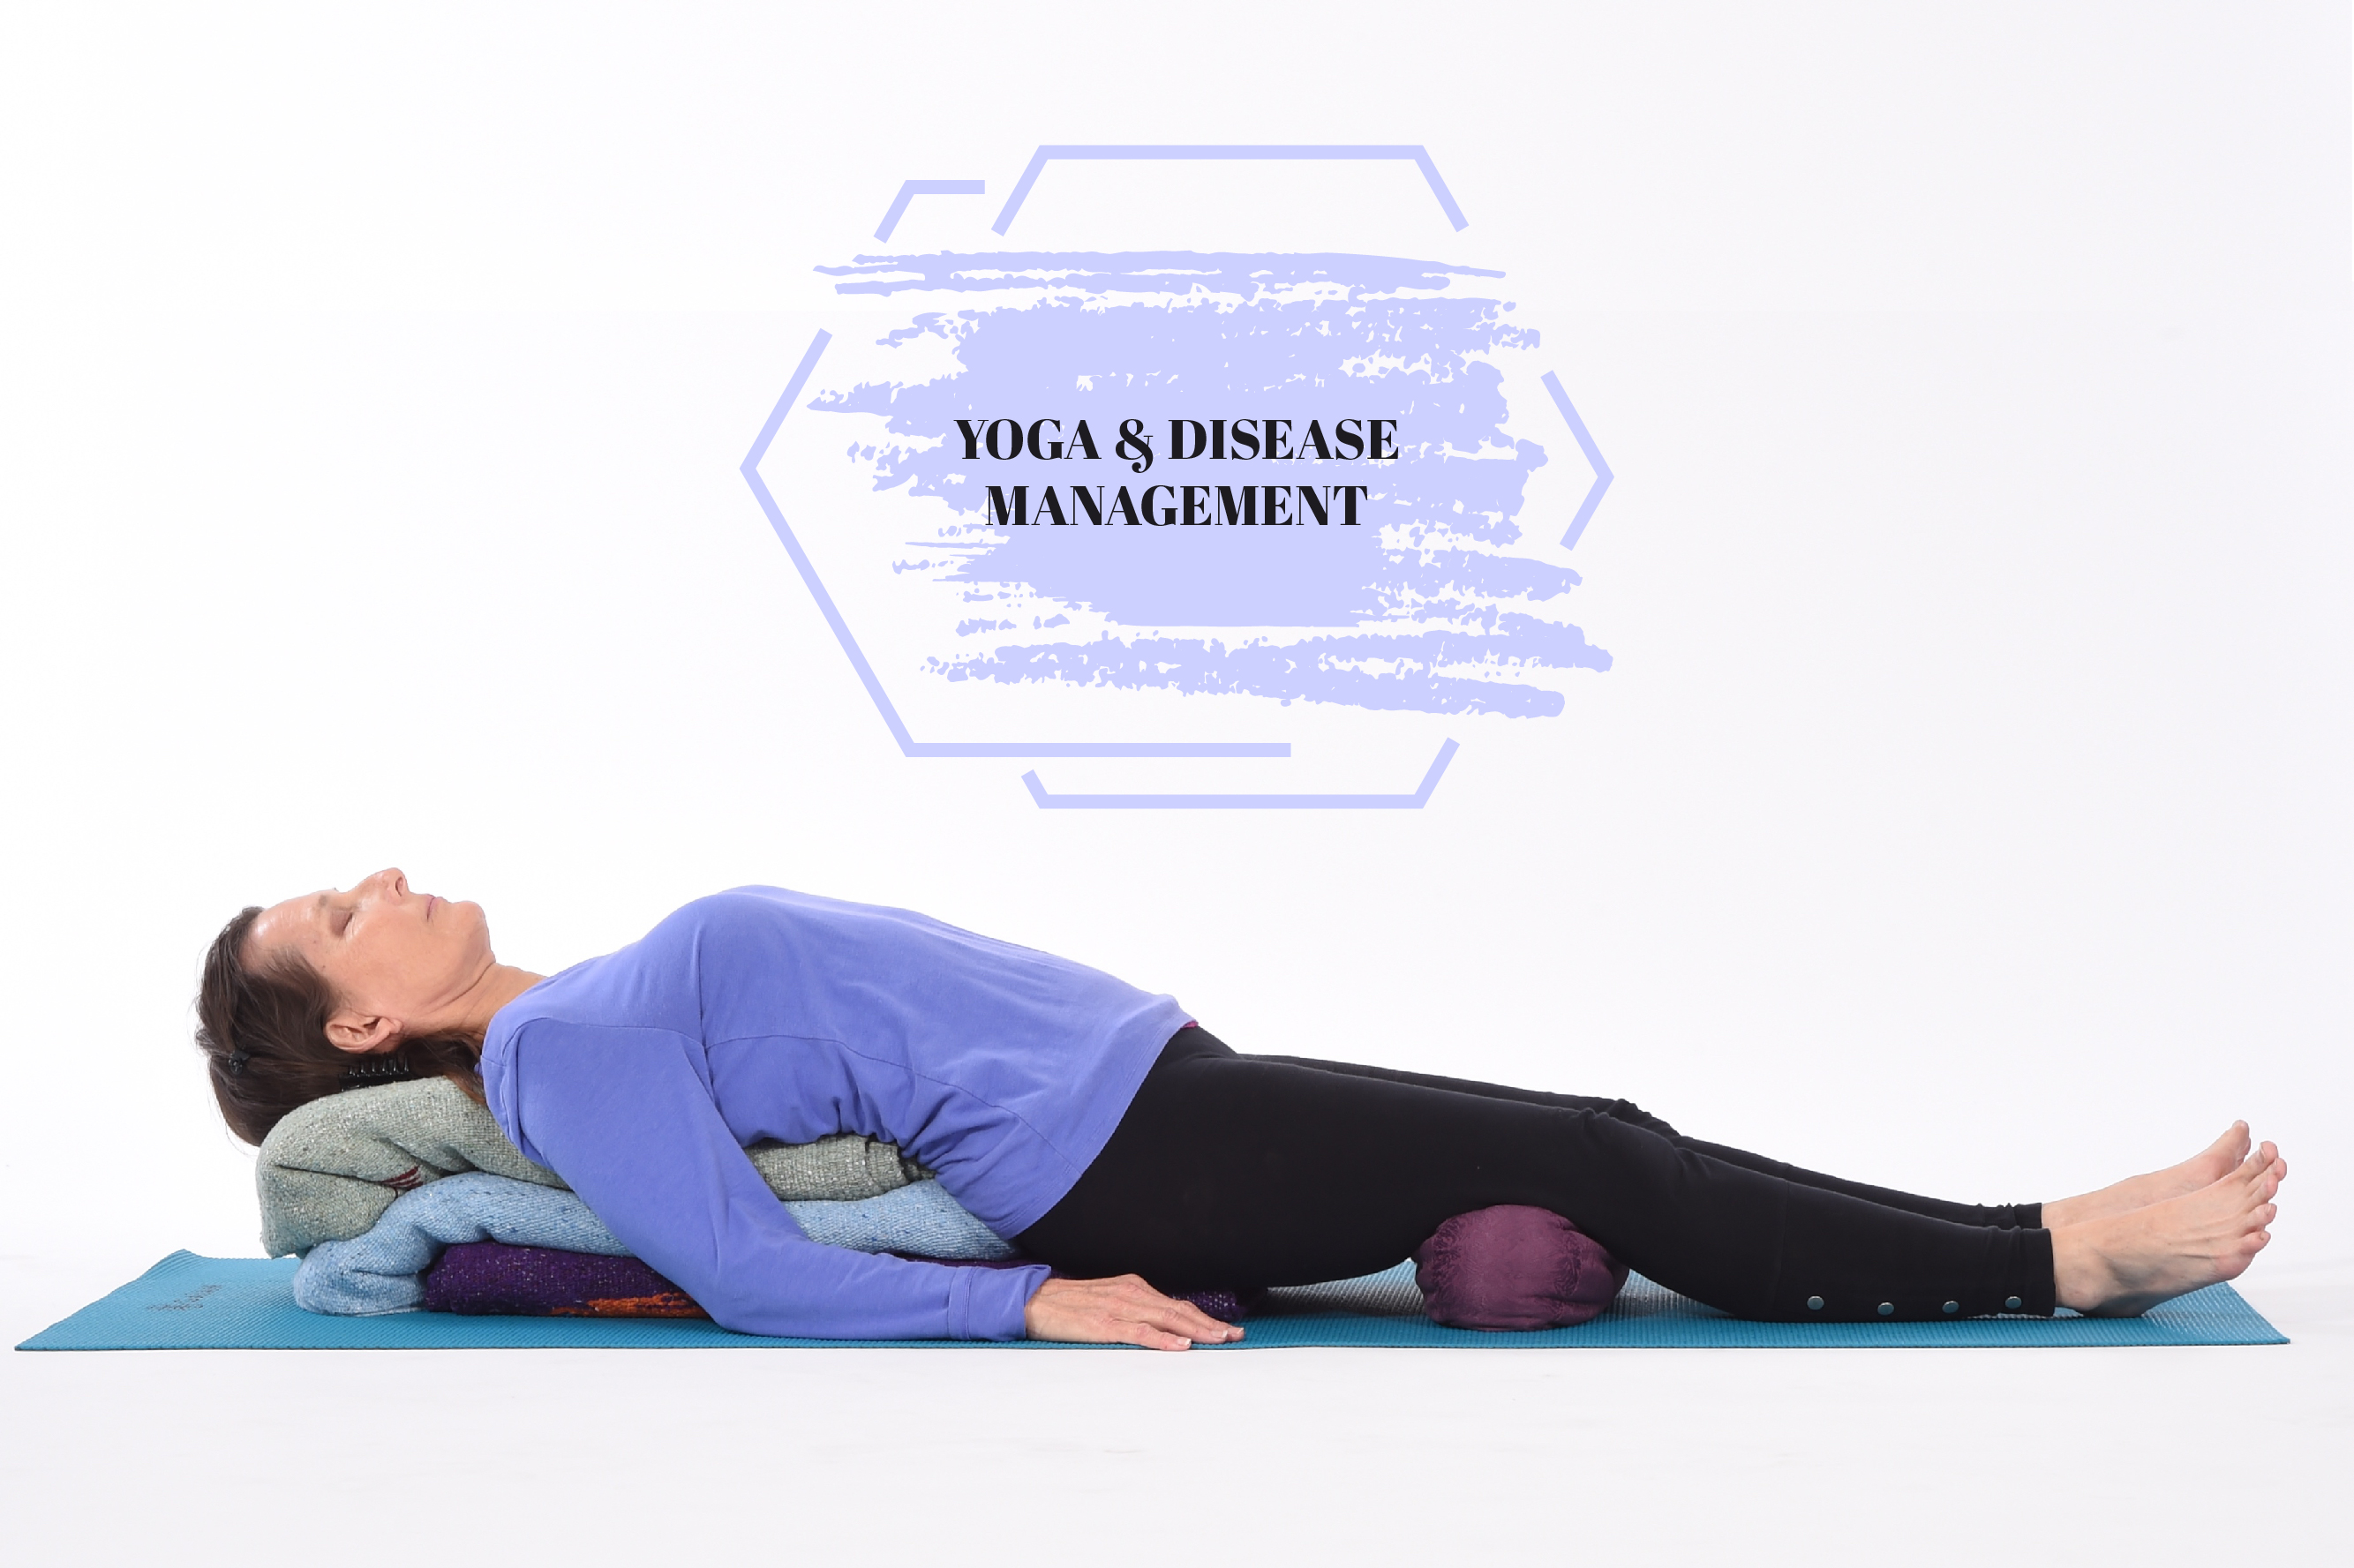 yoga for disease management